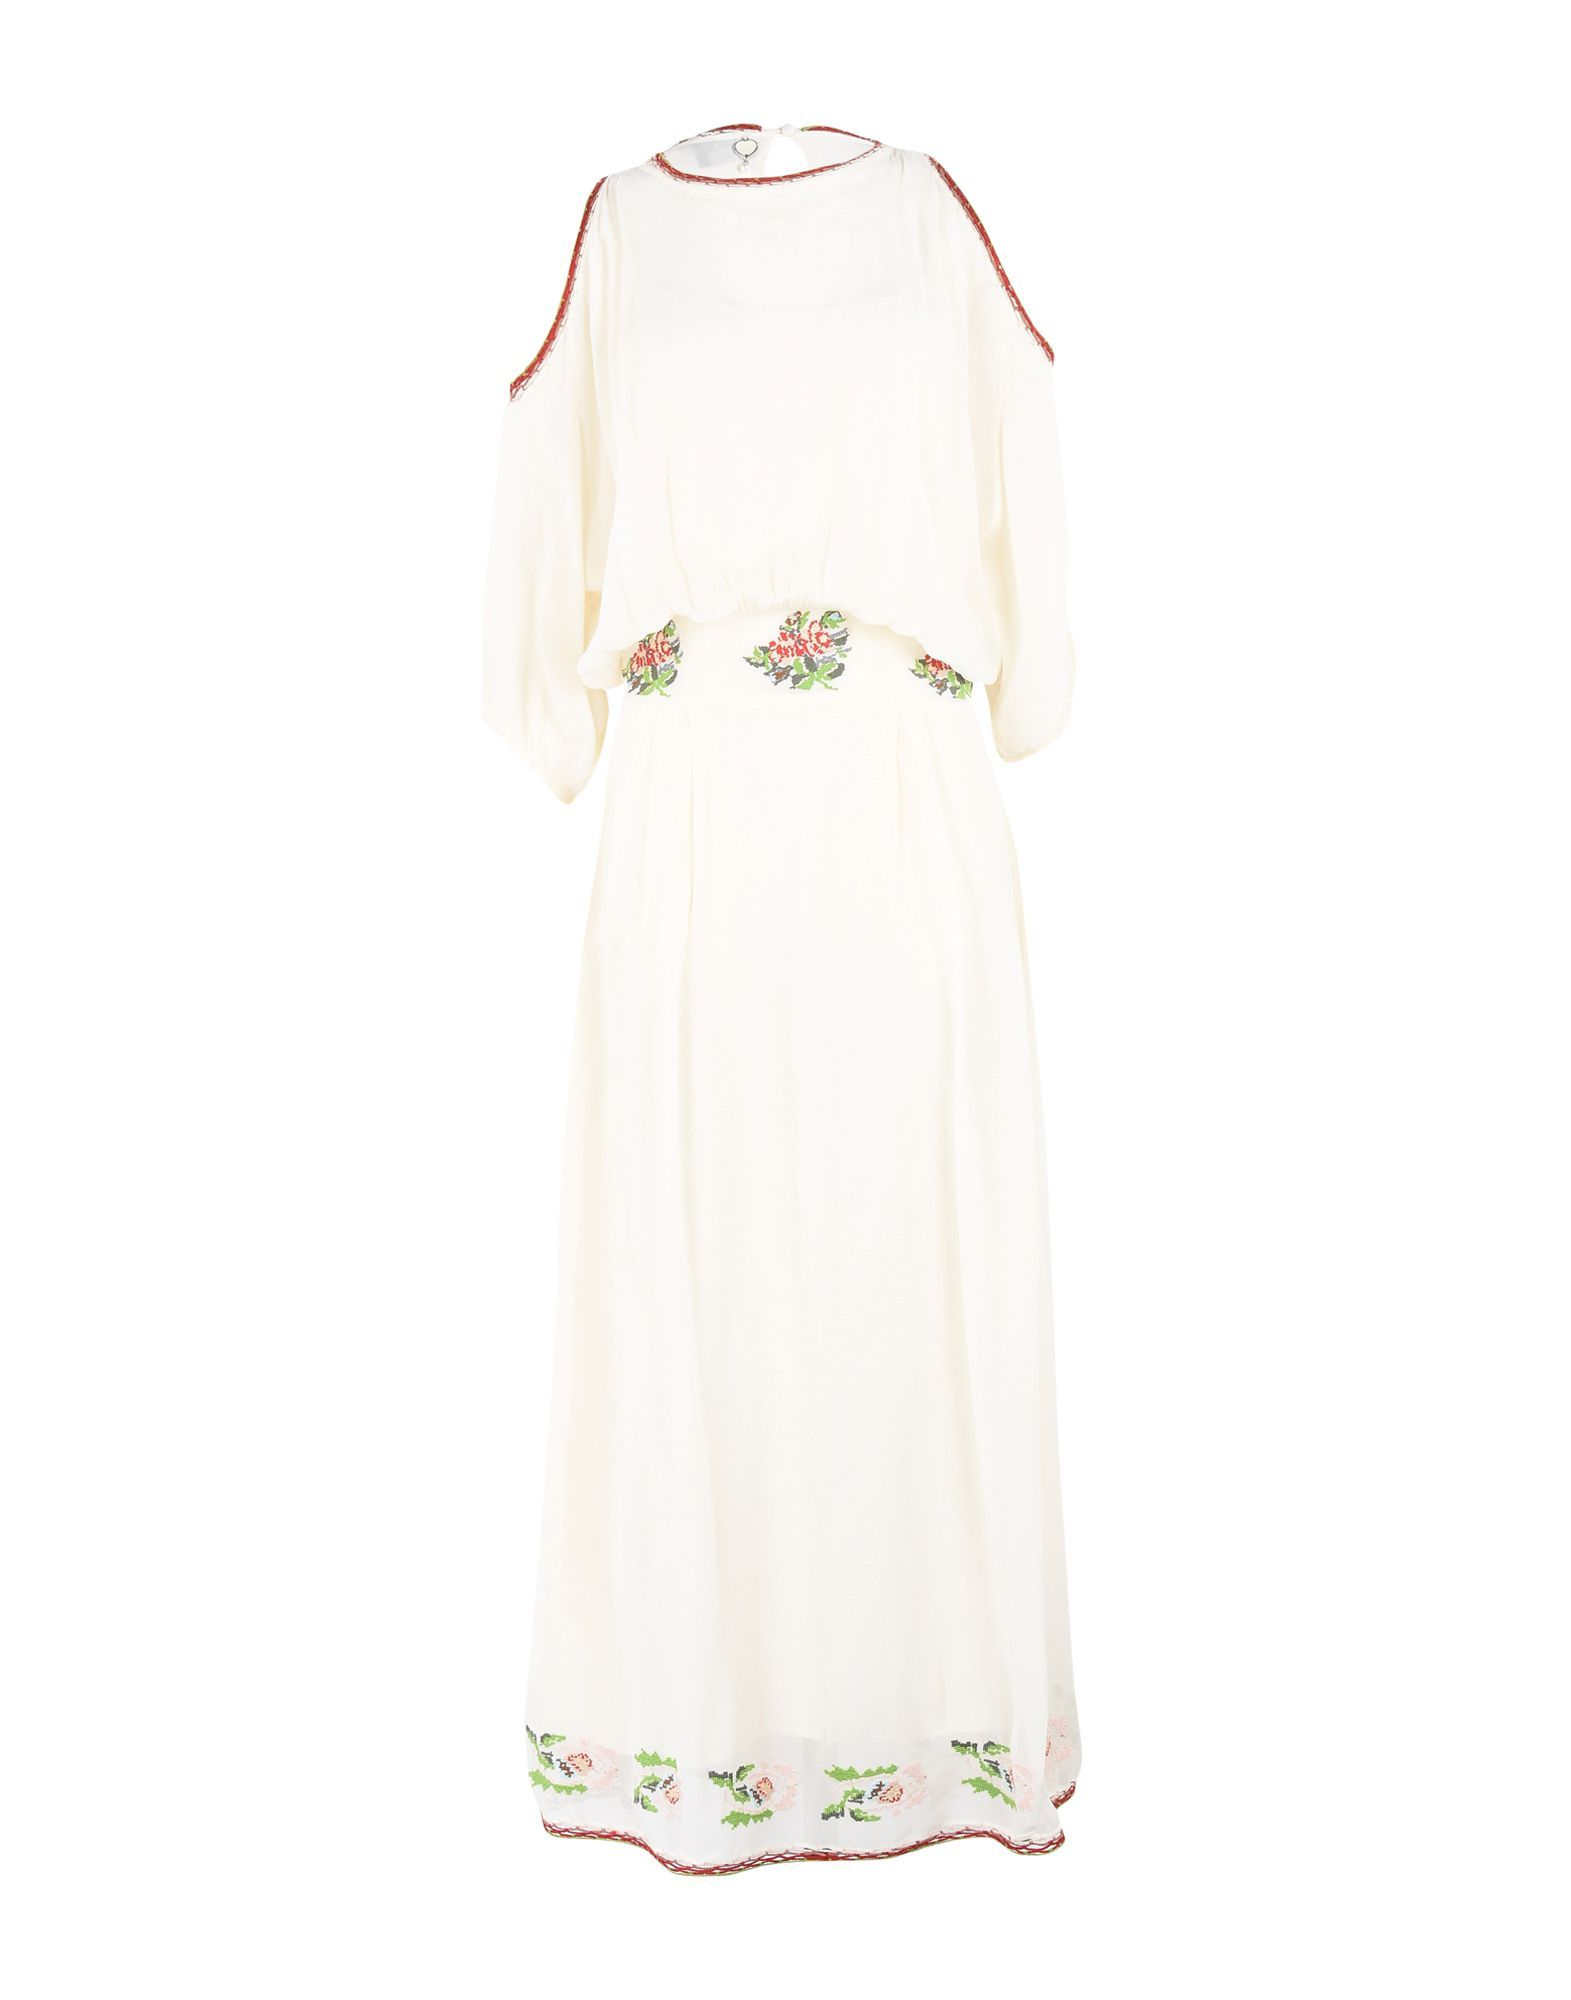 Twin-Set Jeans Ivory Crepe Dress With Embroidery Detail